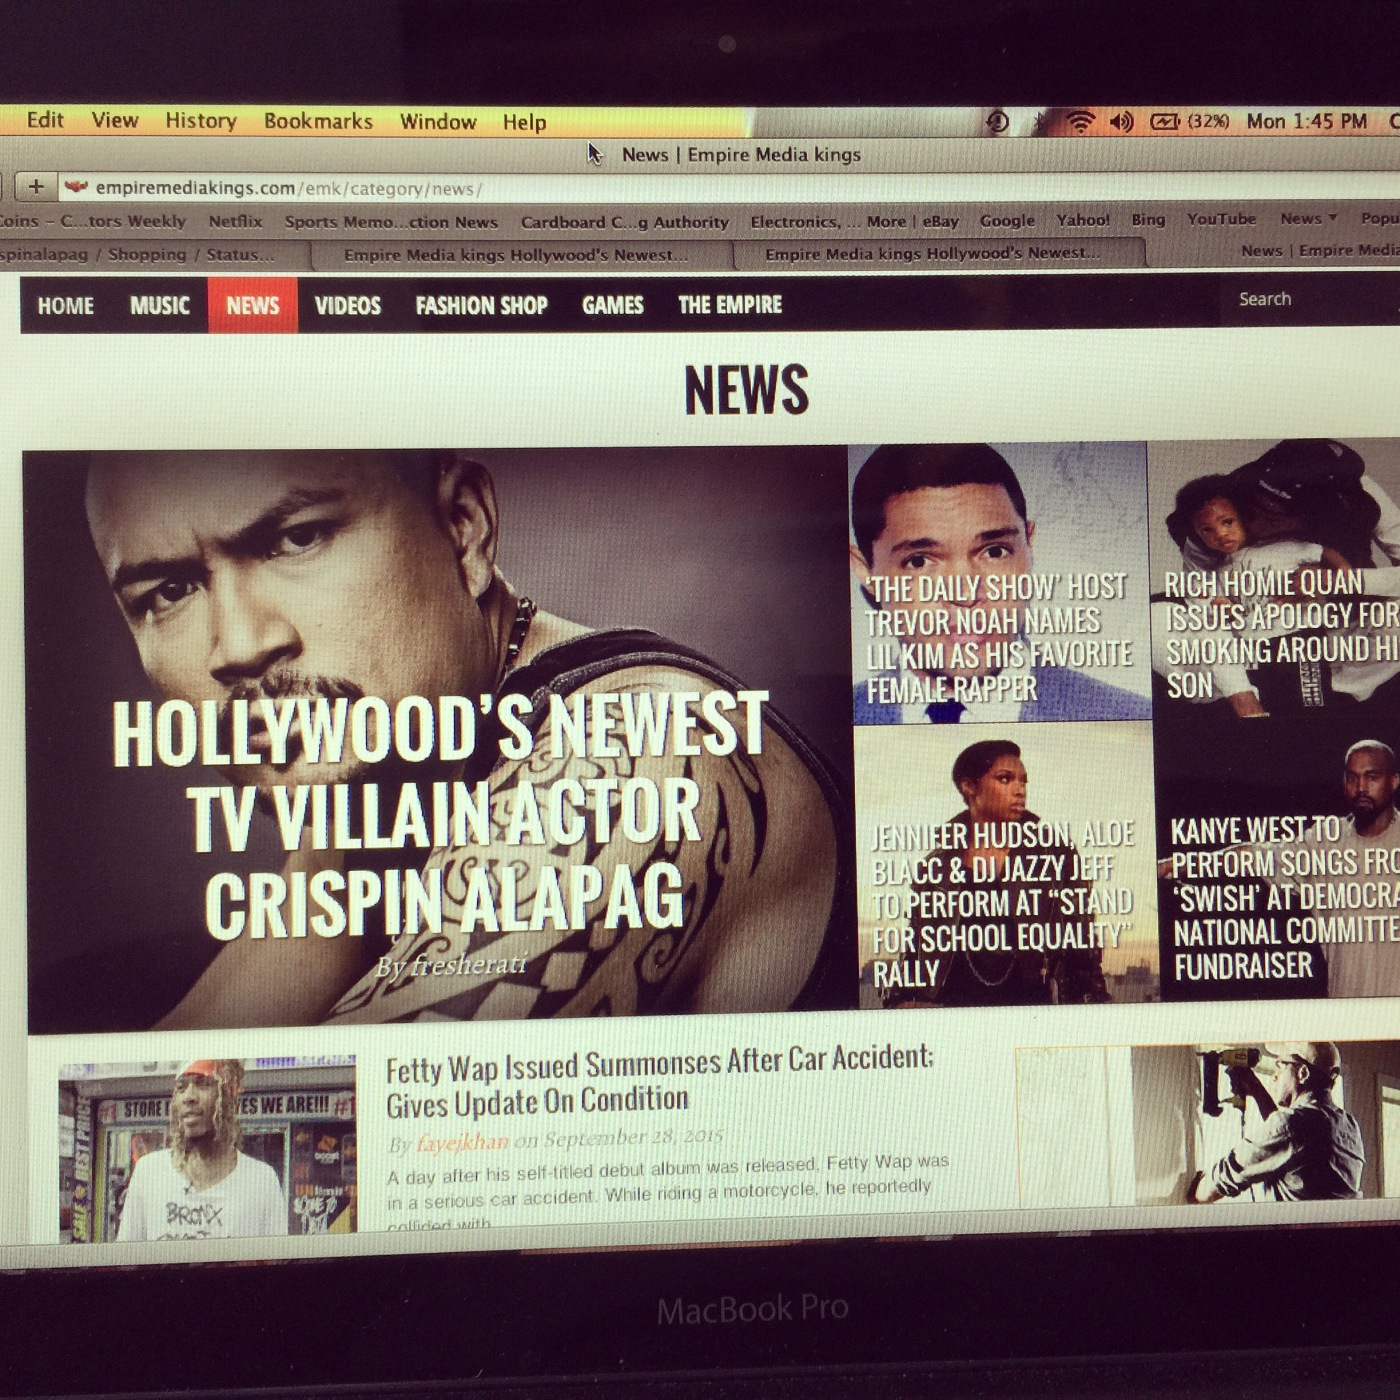 HOLLYWOODS NEWEST TV VILLAIN ACTOR CRISPIN ALAPAG | CRISPIN